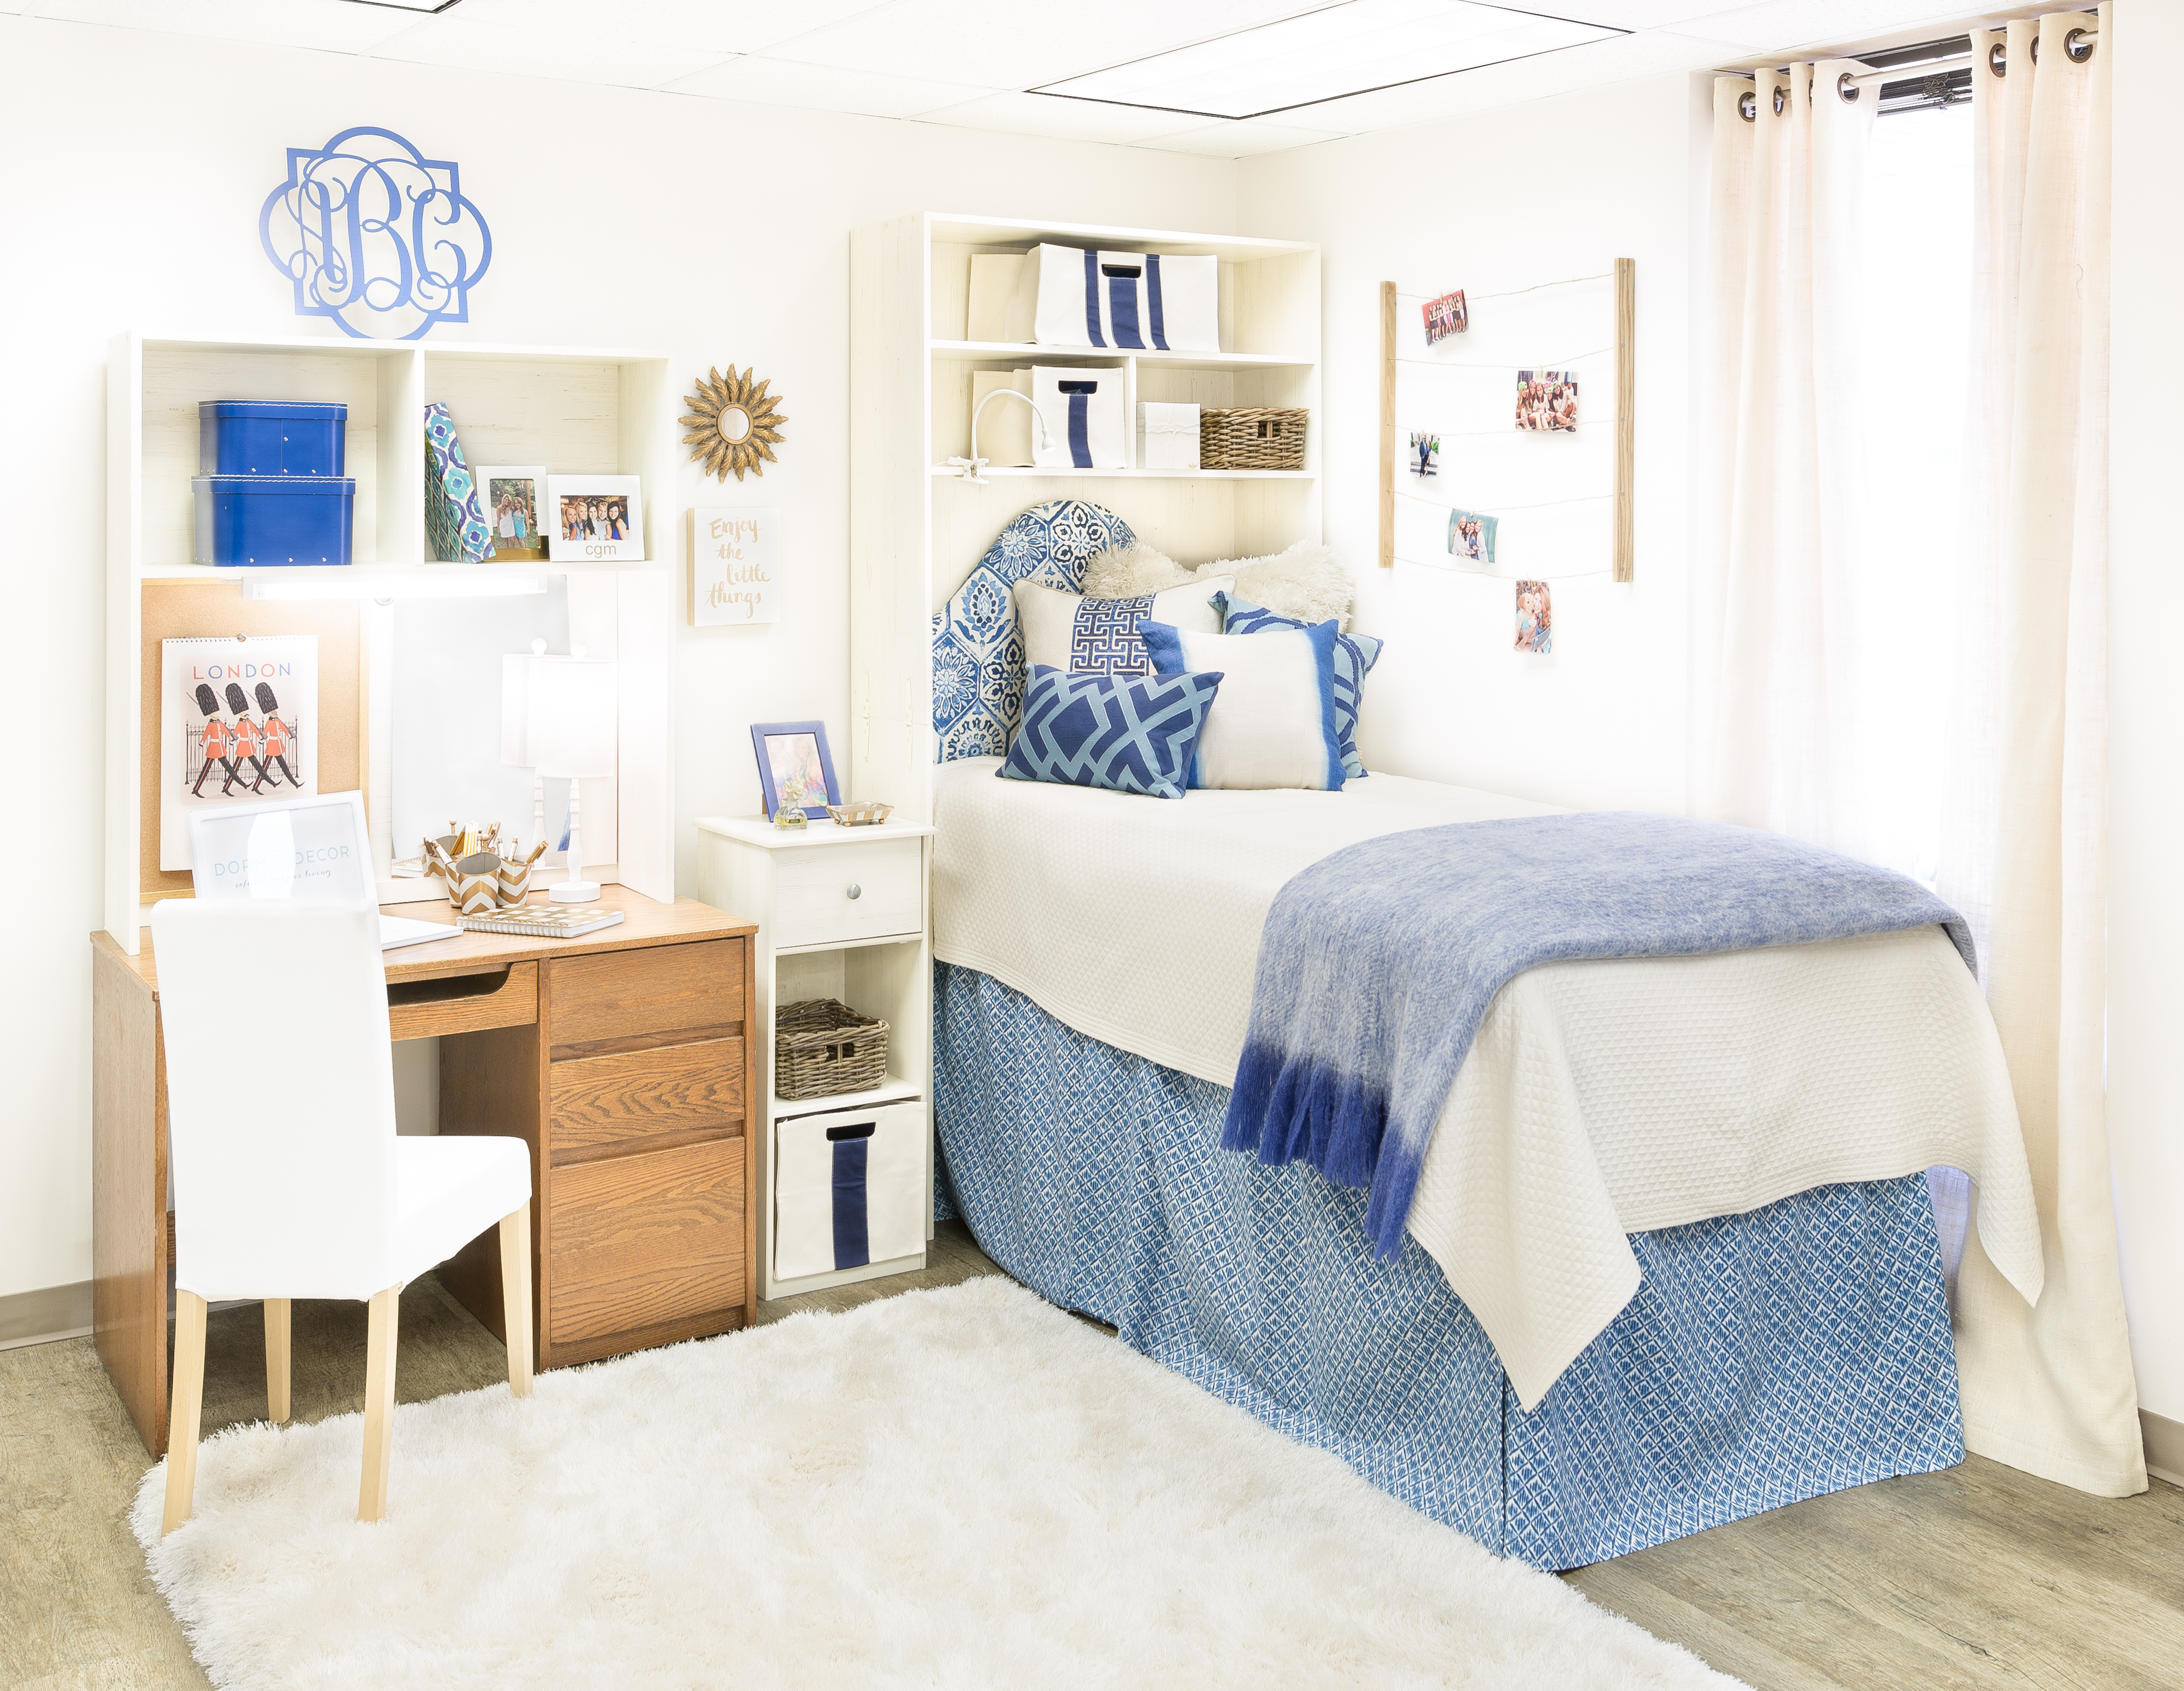 pin instagram arizona dorm the university at college decor of dorms room my